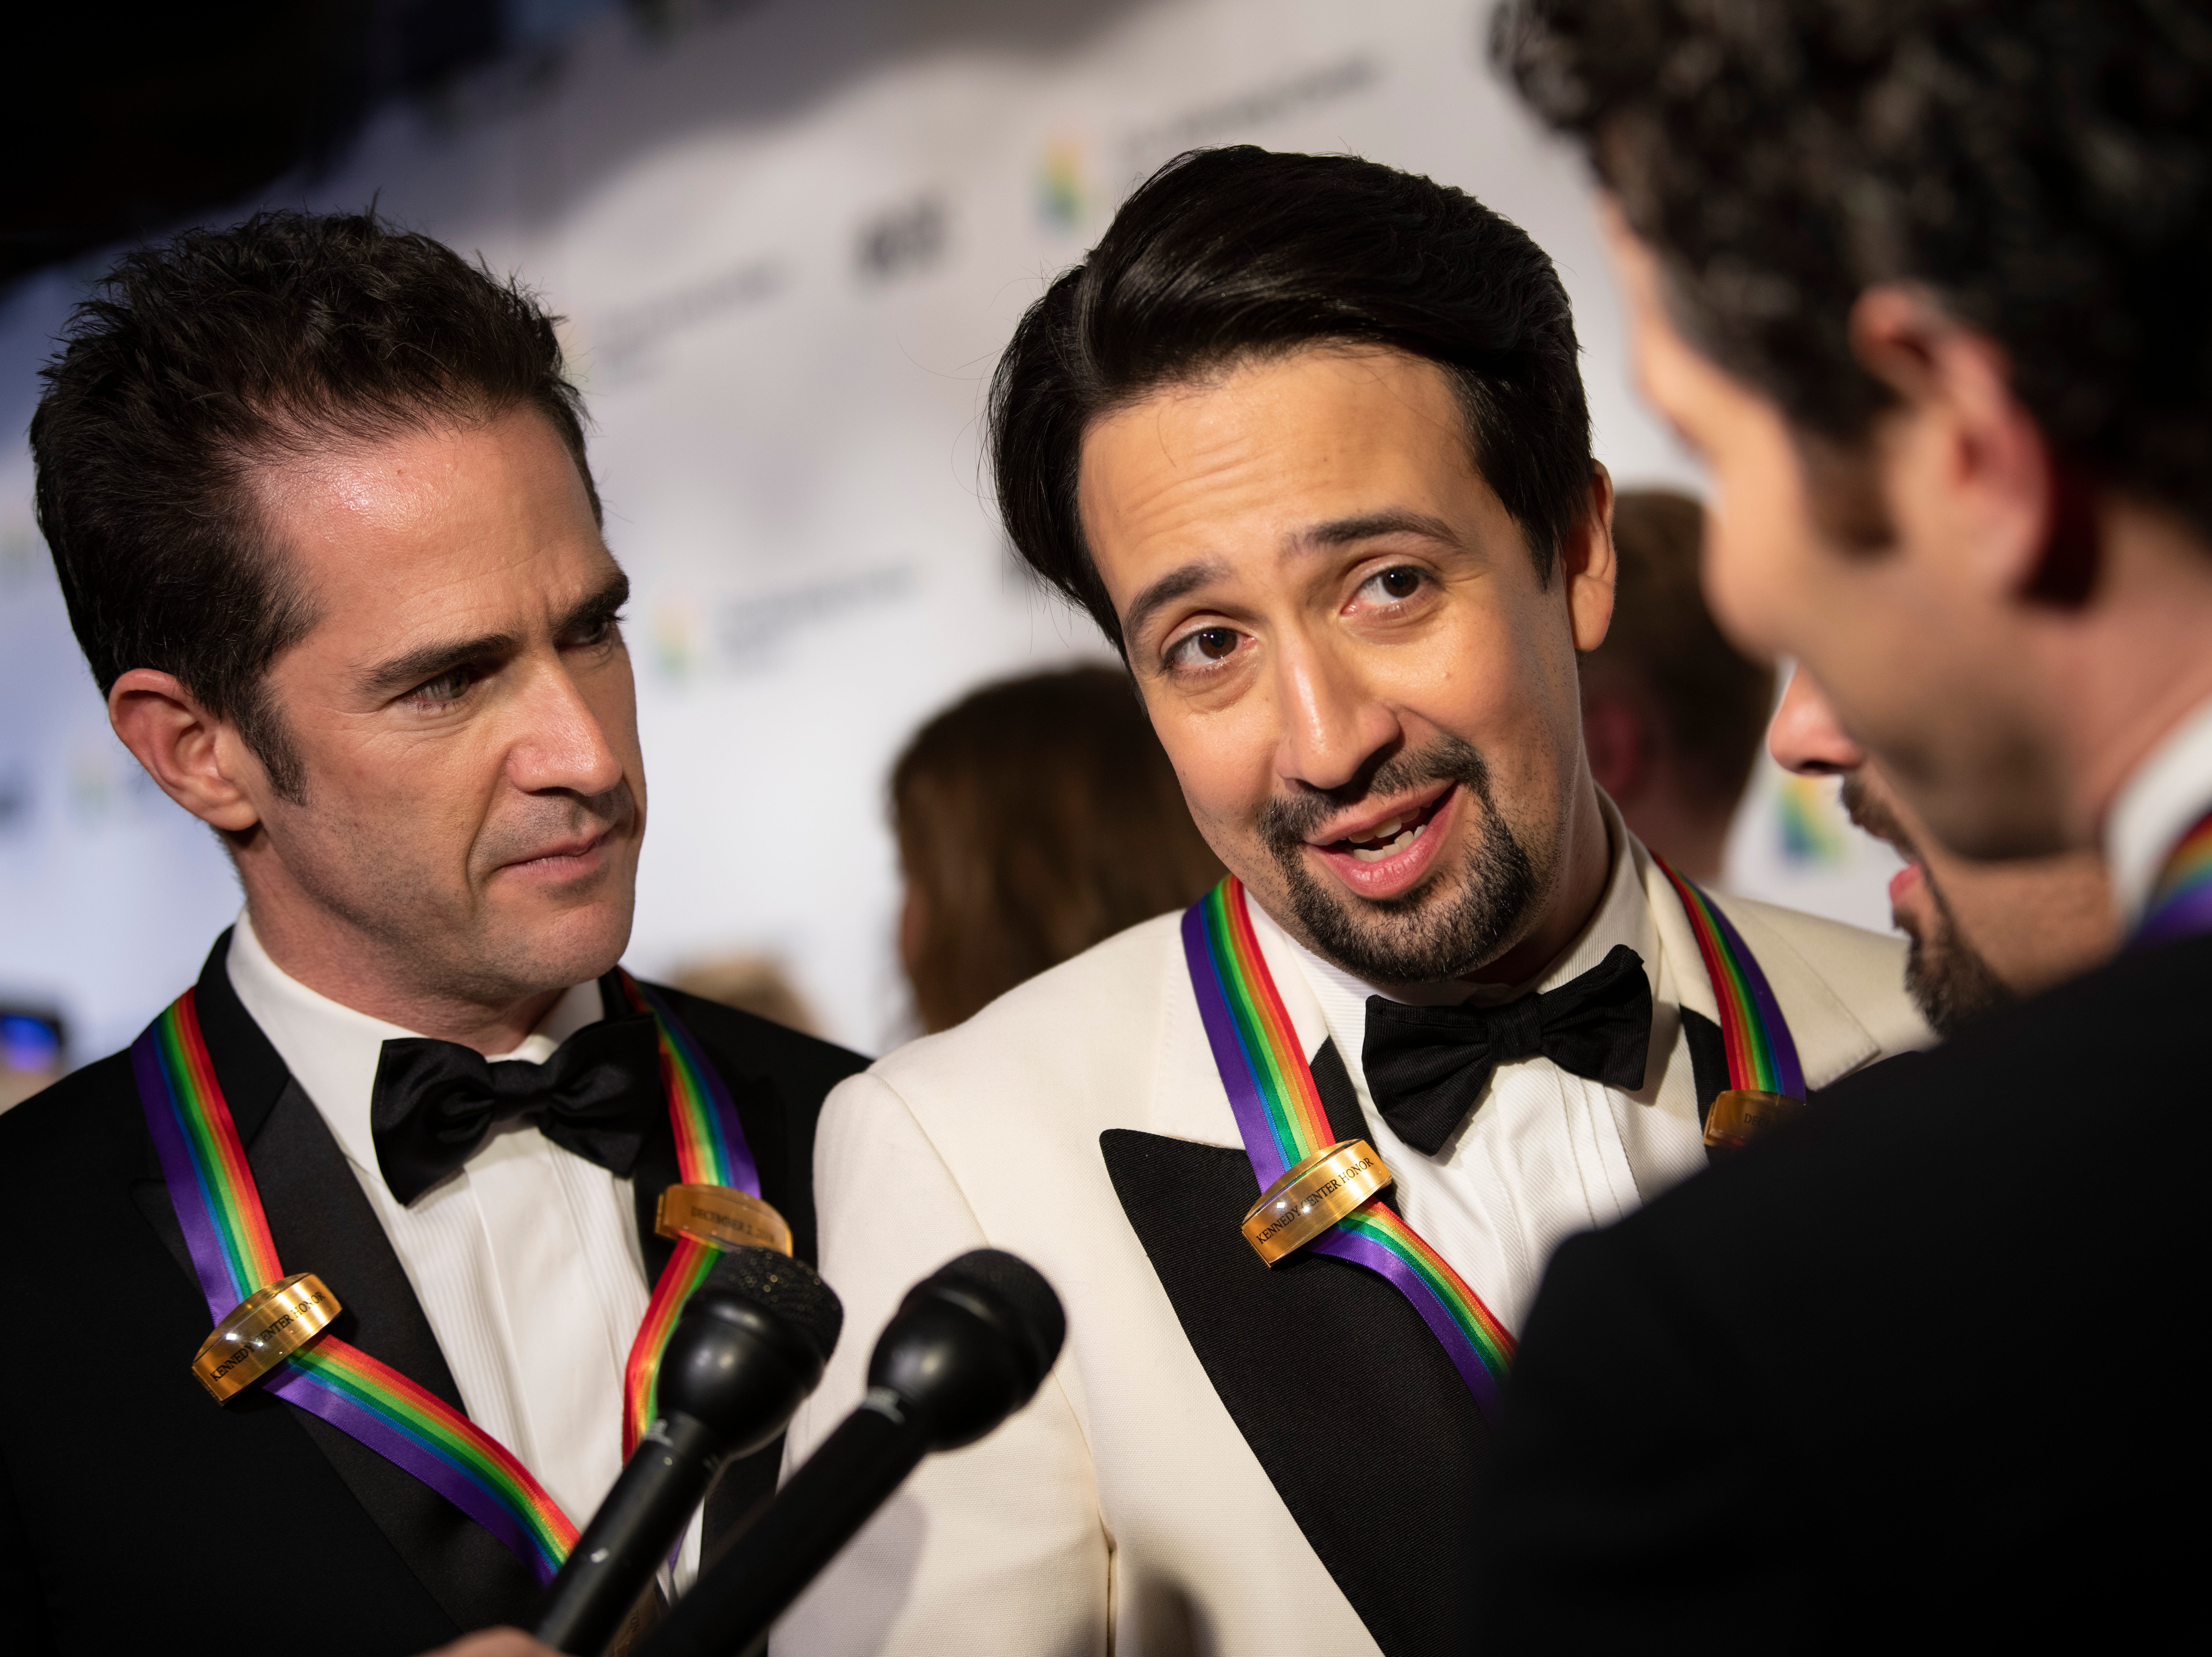 {Dec. 2, 2018} {8:41 p.m.} -- Washington, DC, U.S.A  -- The co-creators of the musical Hamilton were honored with a group award at the 2018 Kennedy Center Honors.  --    Photo by Hannah Gaber, USA TODAY staff ORG XMIT:  HG 137674 Kennedy Center H 12/2/2018 [Via MerlinFTP Drop]